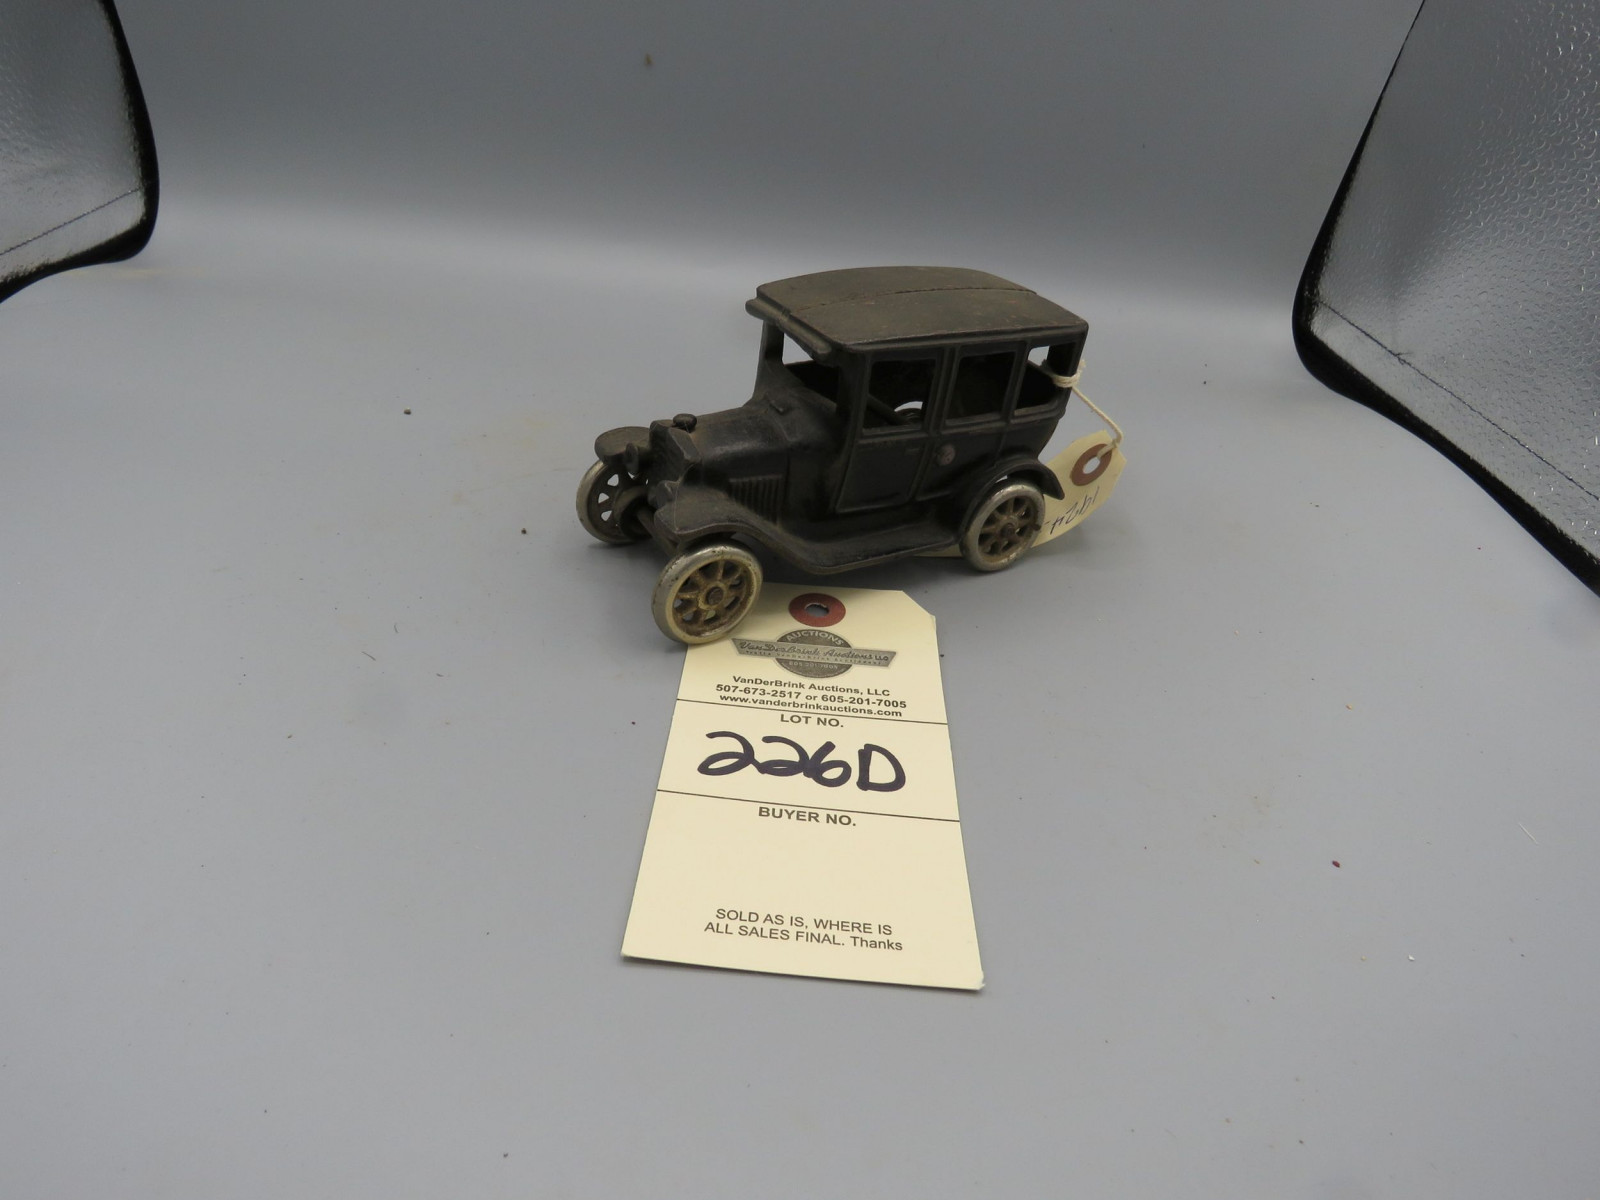 Arcade Cast Iron Sedan @1924 Approx. 6 inches - Image 2